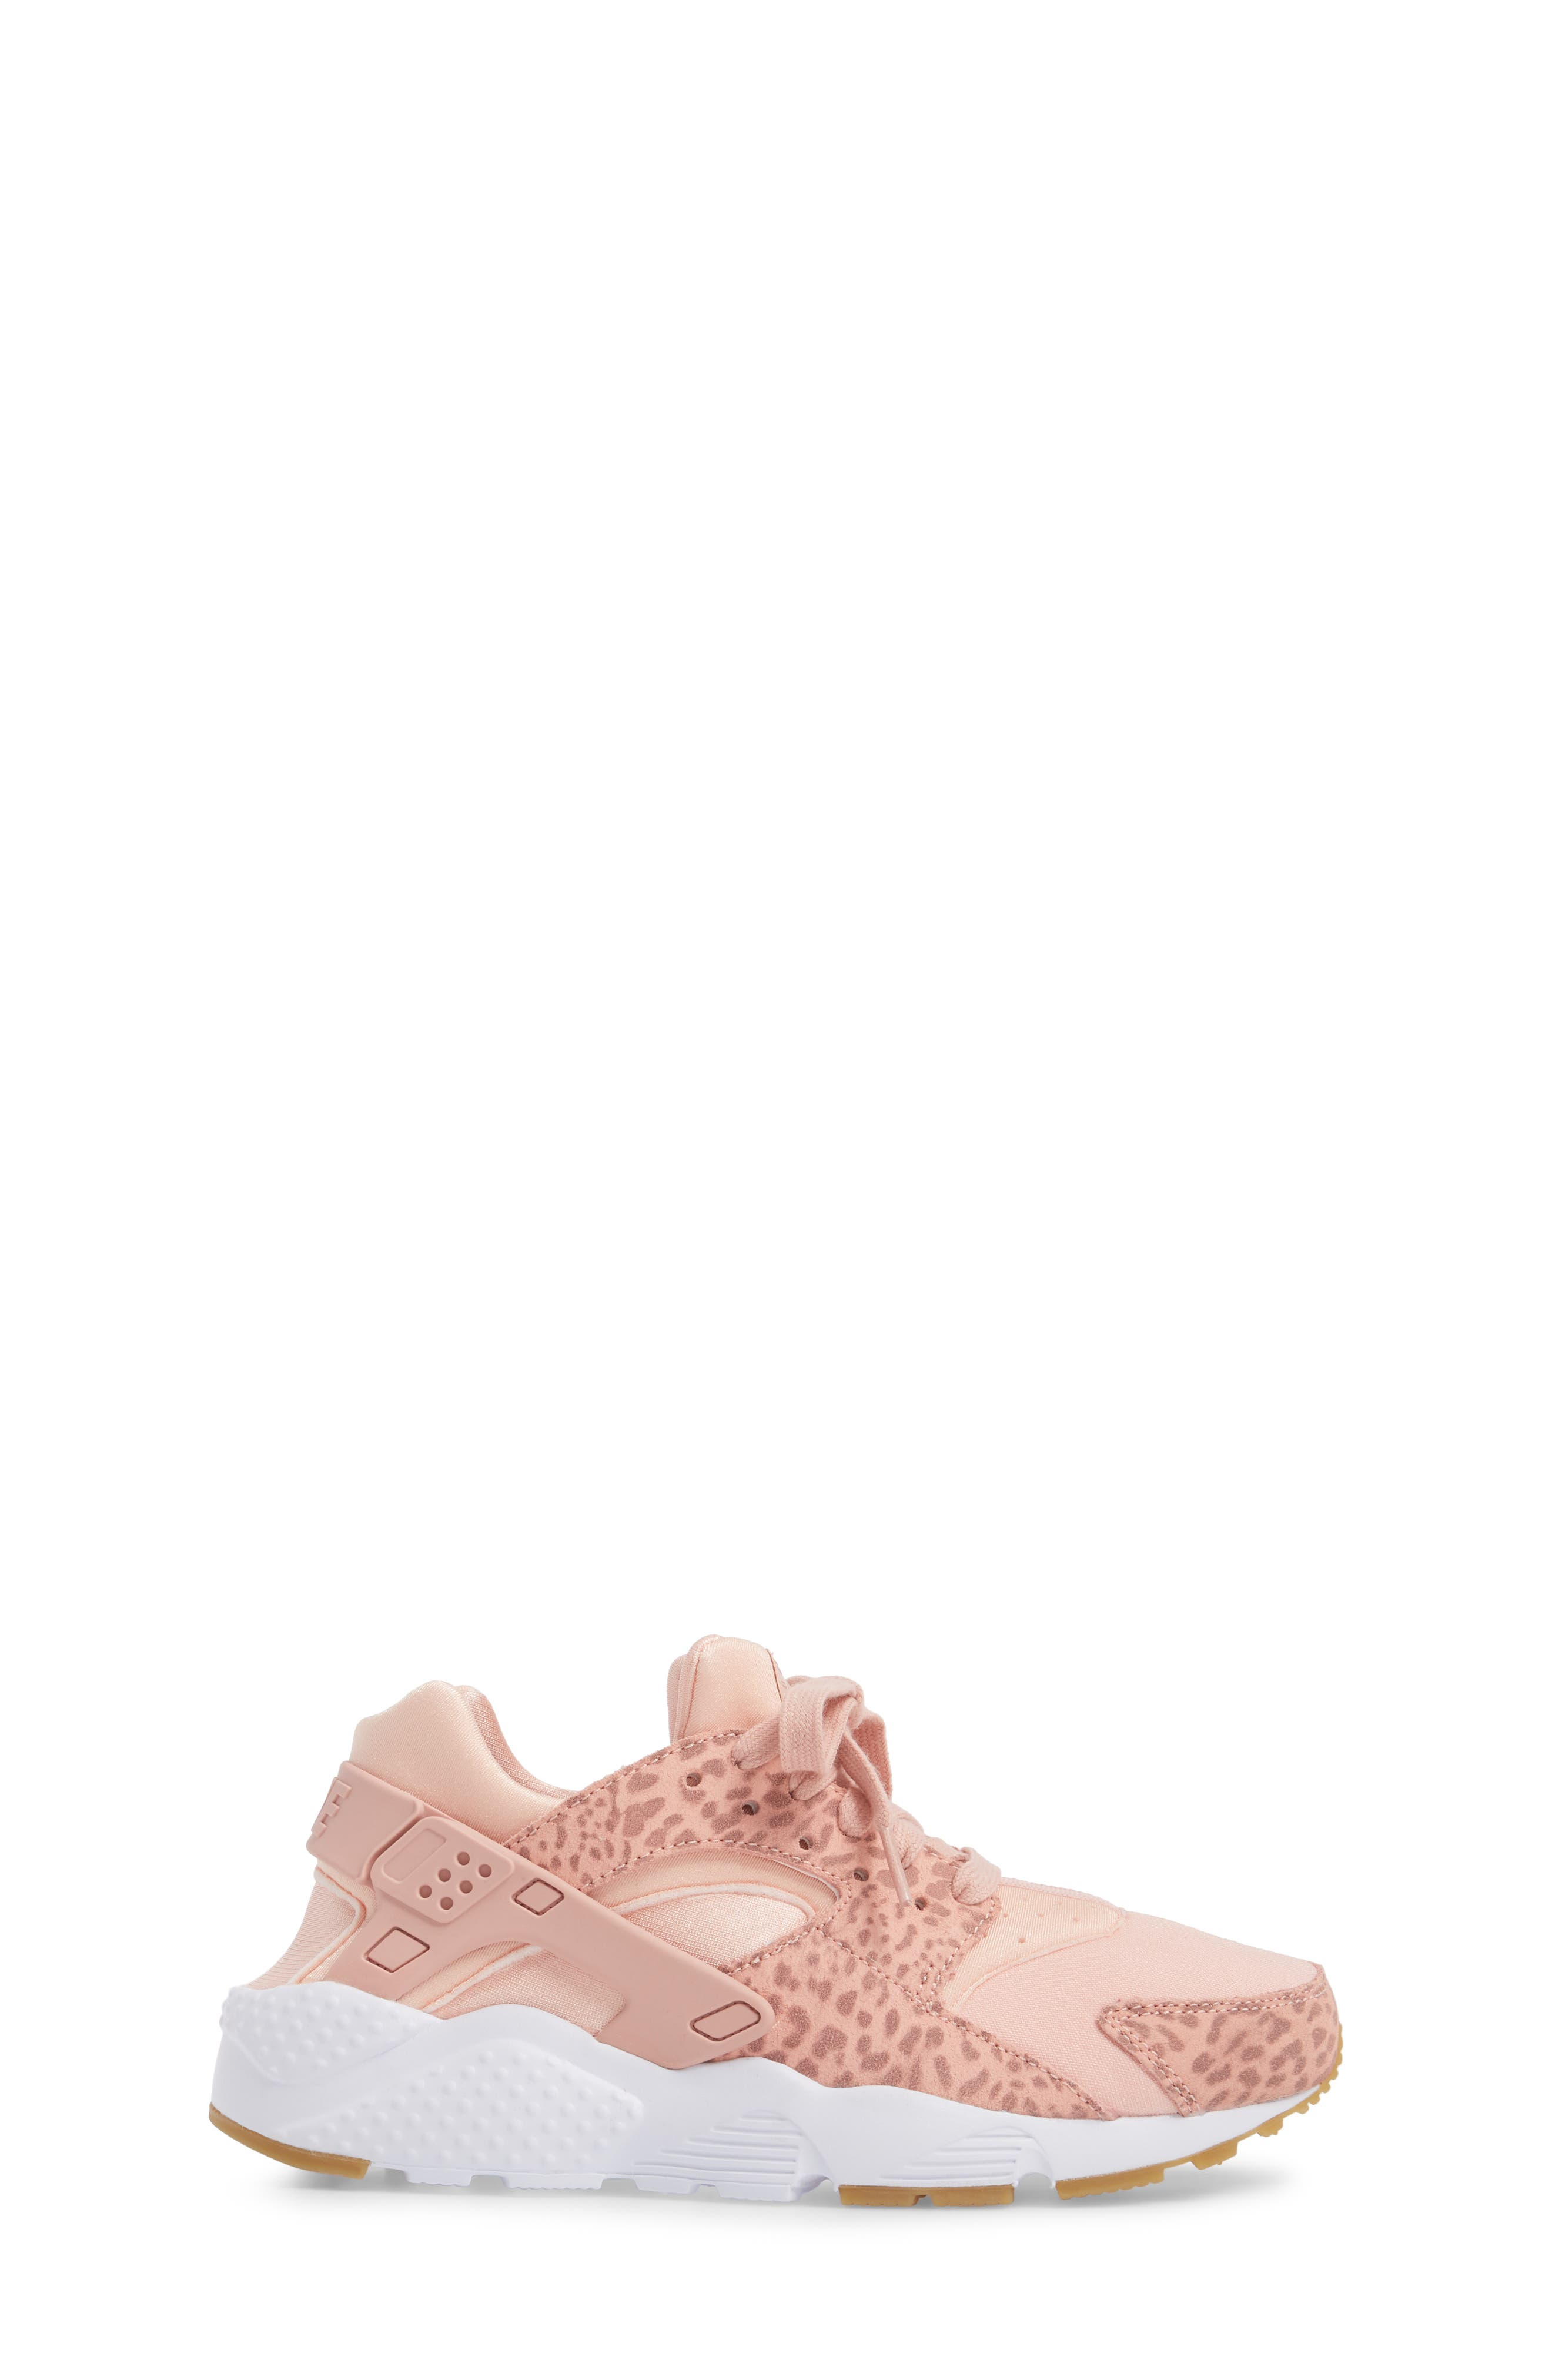 Huarache Run SE Sneaker,                             Alternate thumbnail 3, color,                             Coral Stardust/ Rust Pink/ Gum